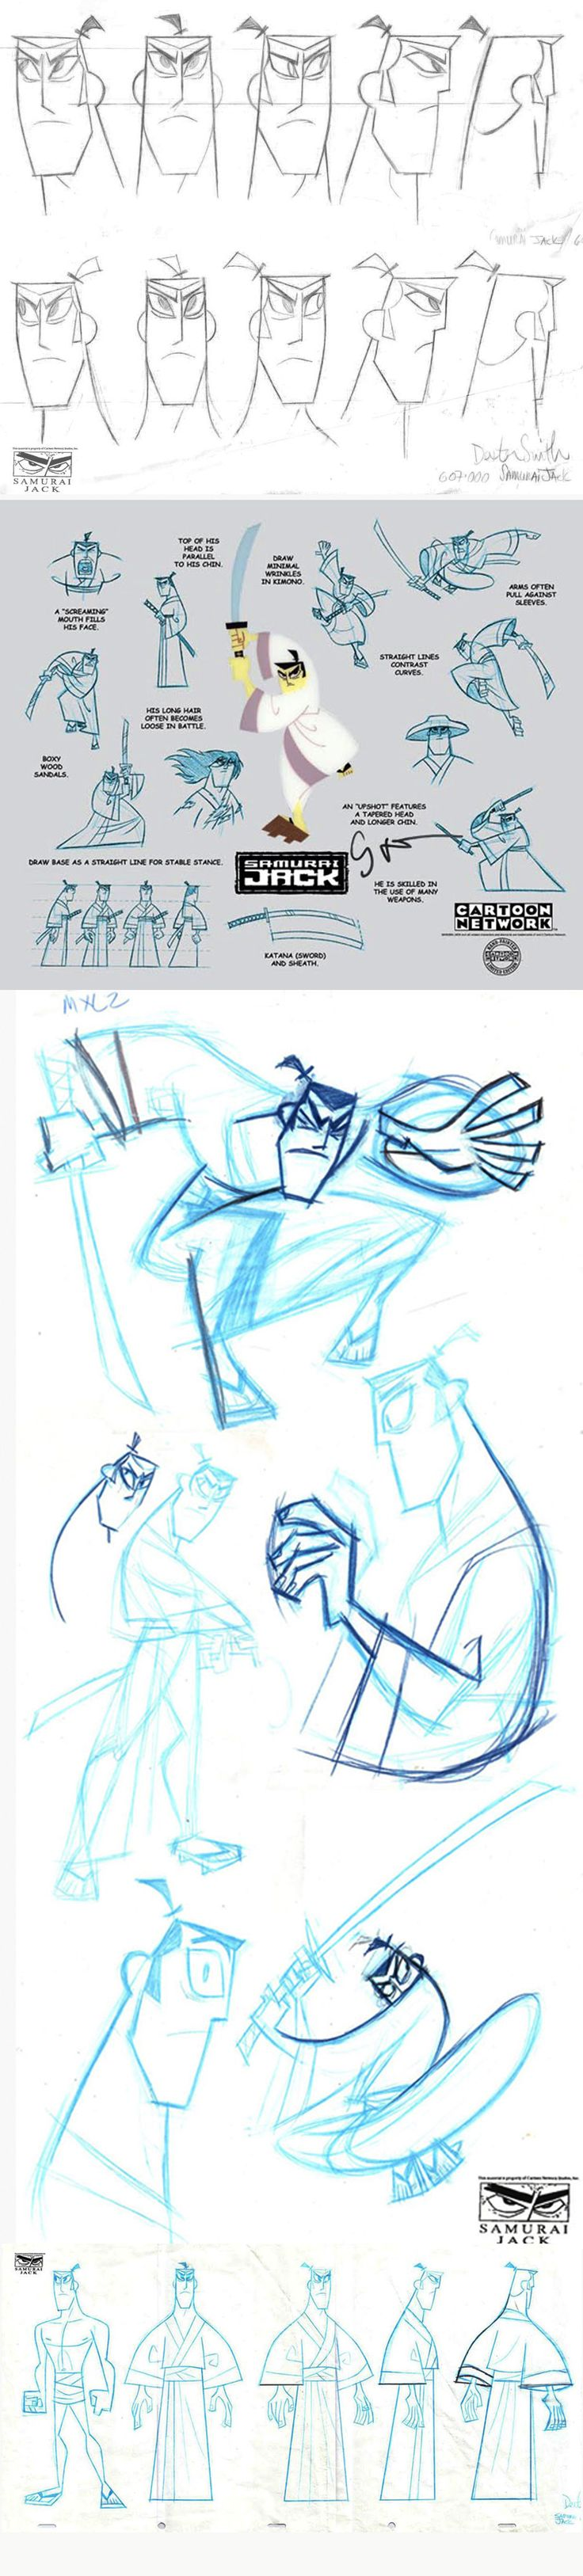 Samurai Jack.   http://www.traditionalanimation.com/samurai-jack-model-sheets/